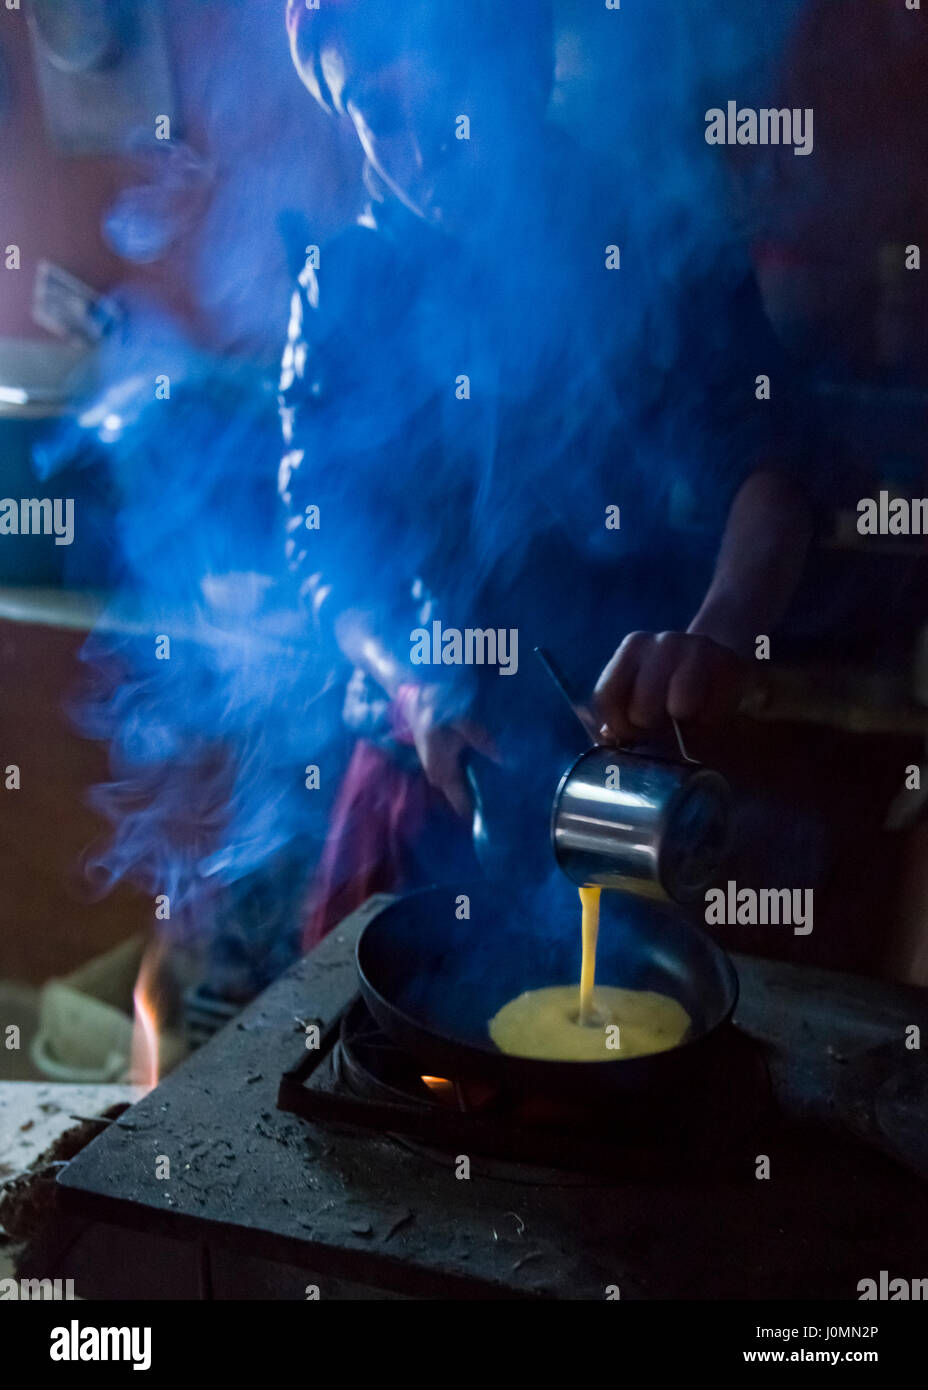 A woman cooking an omelette in a trekkers lodge in the Nepal Himalaya. Photo © robertvansluis.com - Stock Image